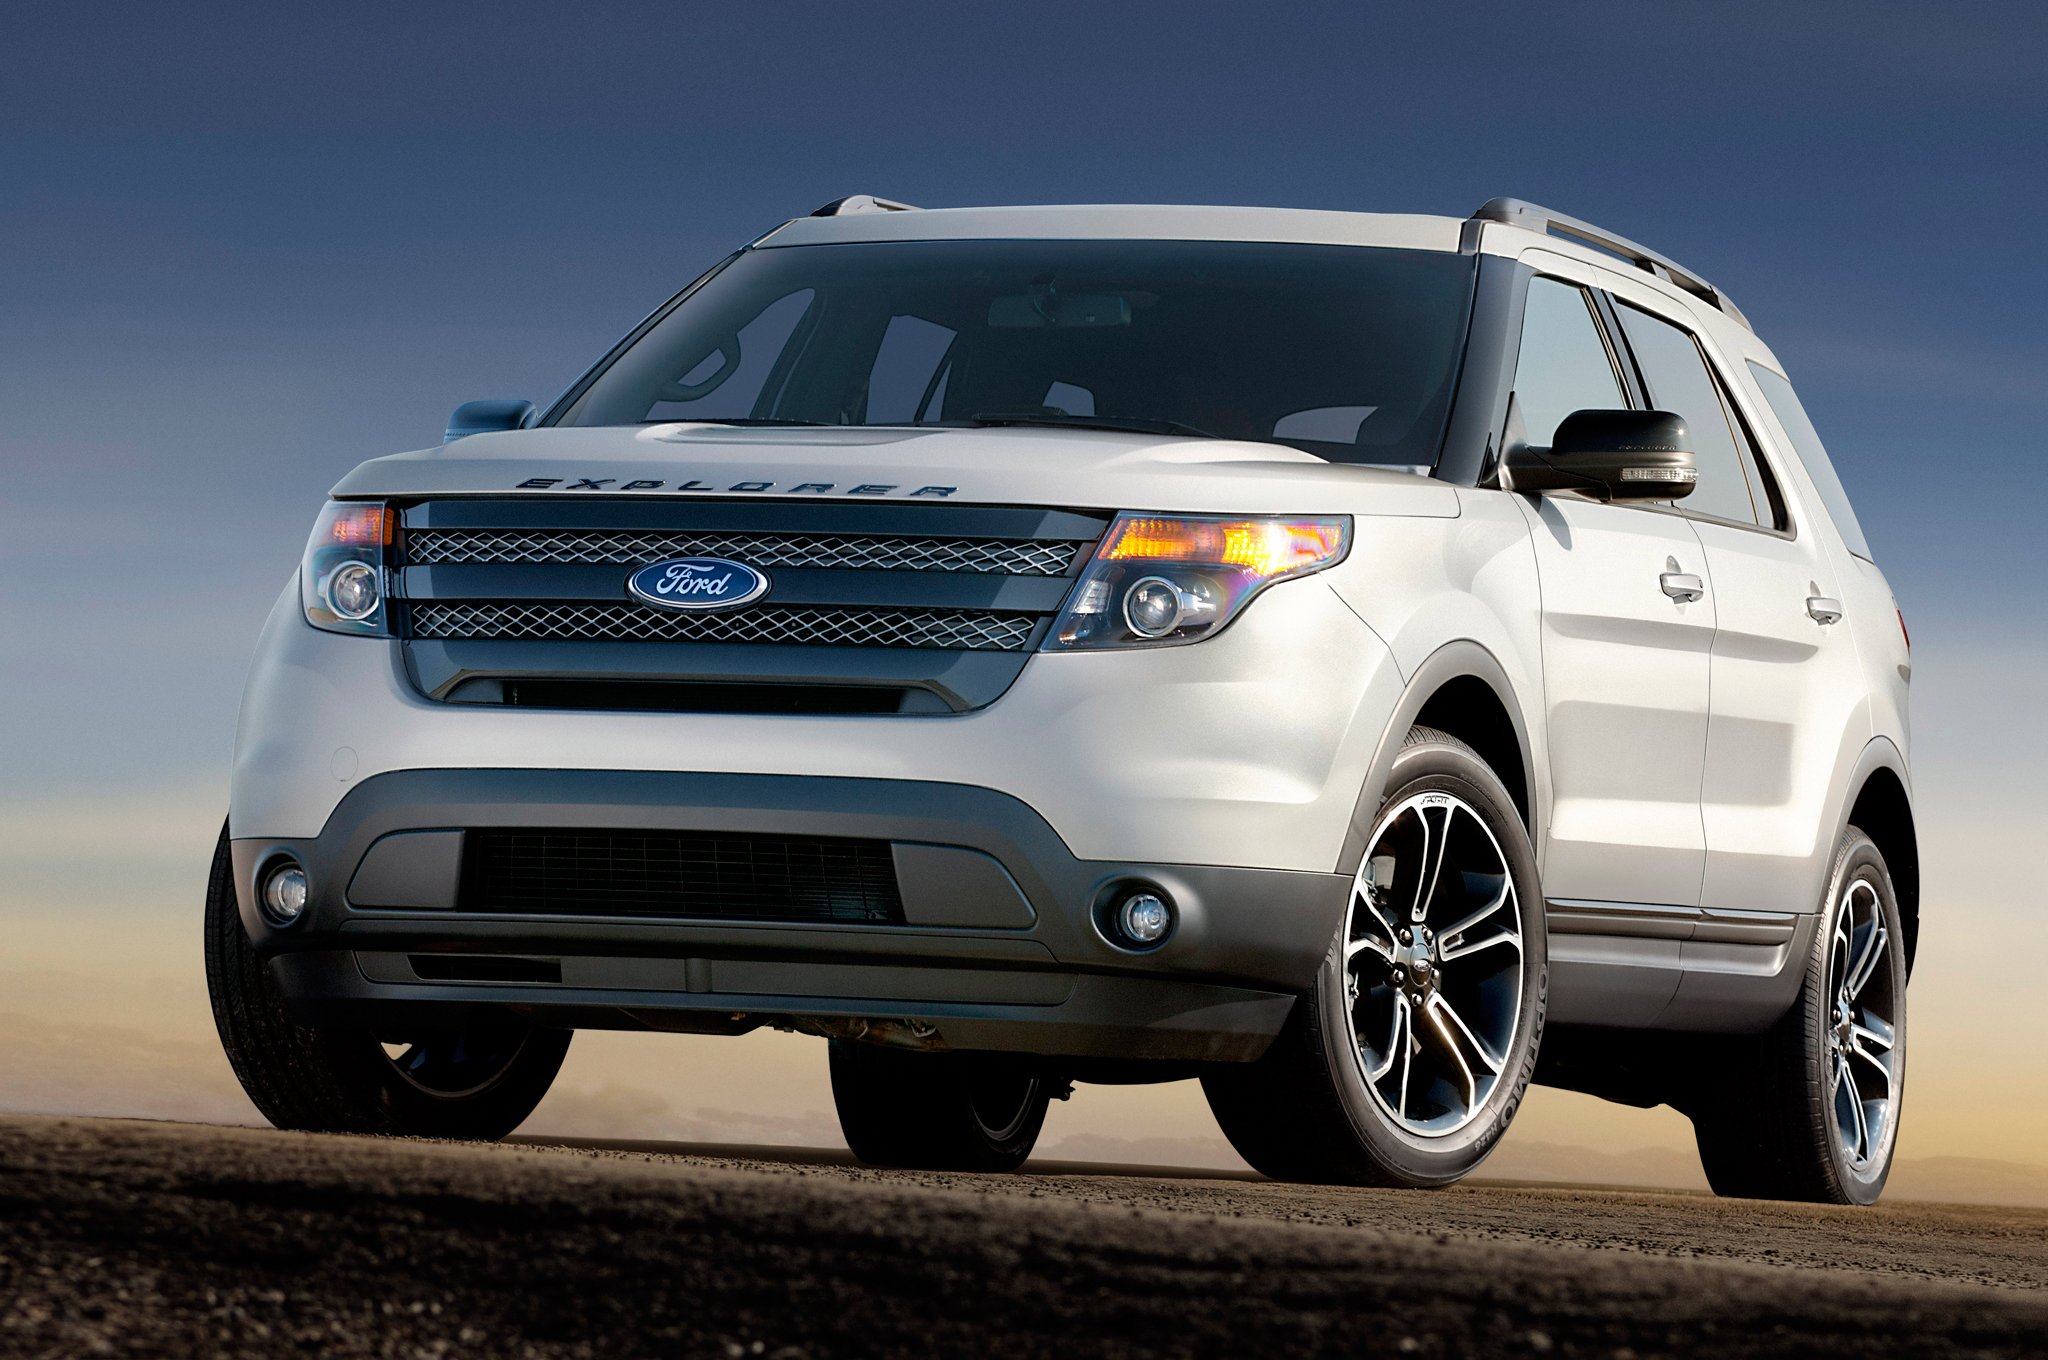 2014 Most Popular Car Color In North America Is White